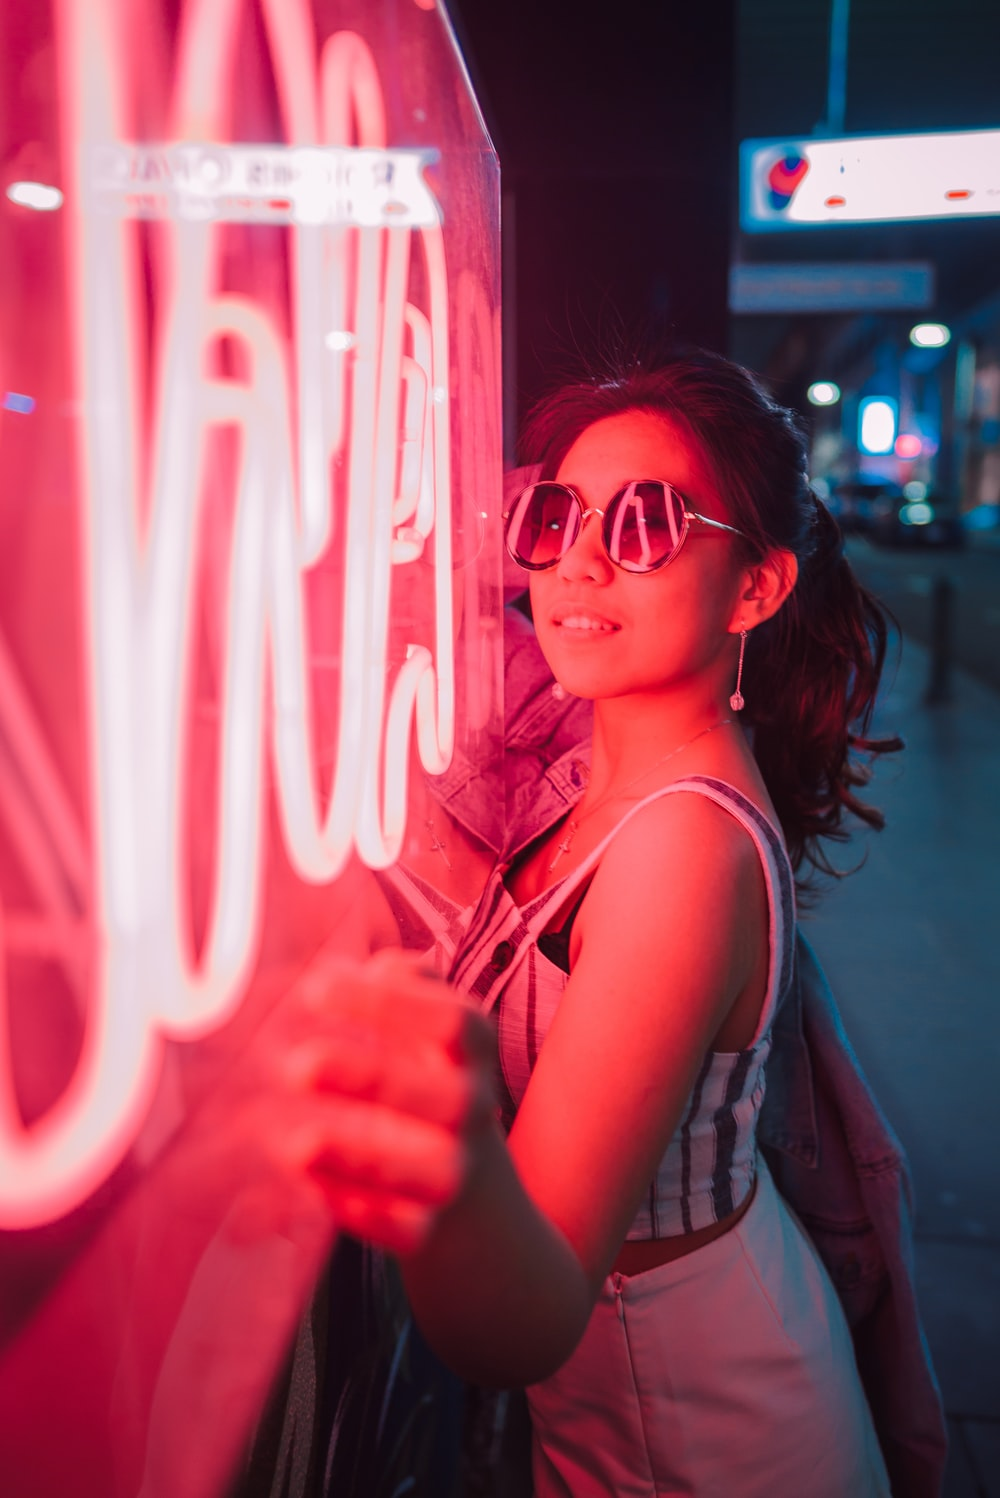 woman standing near red neon signage at night